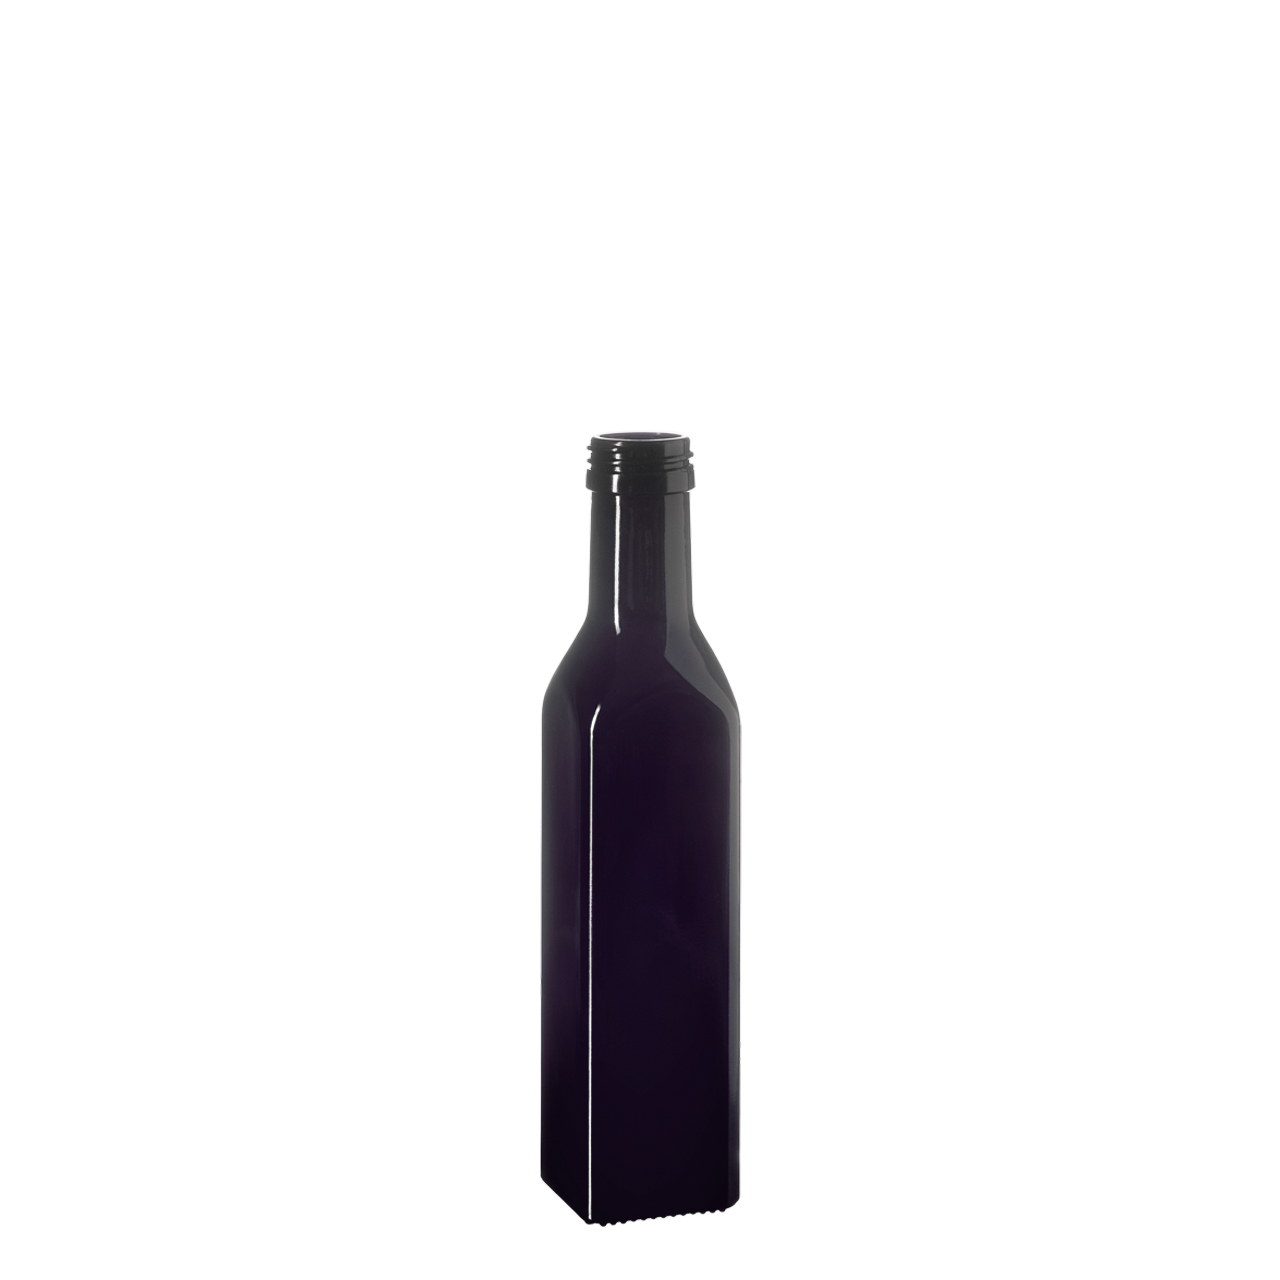 Oil bottle Castor 250 ml, Miron, 31.5 STD thread (square)